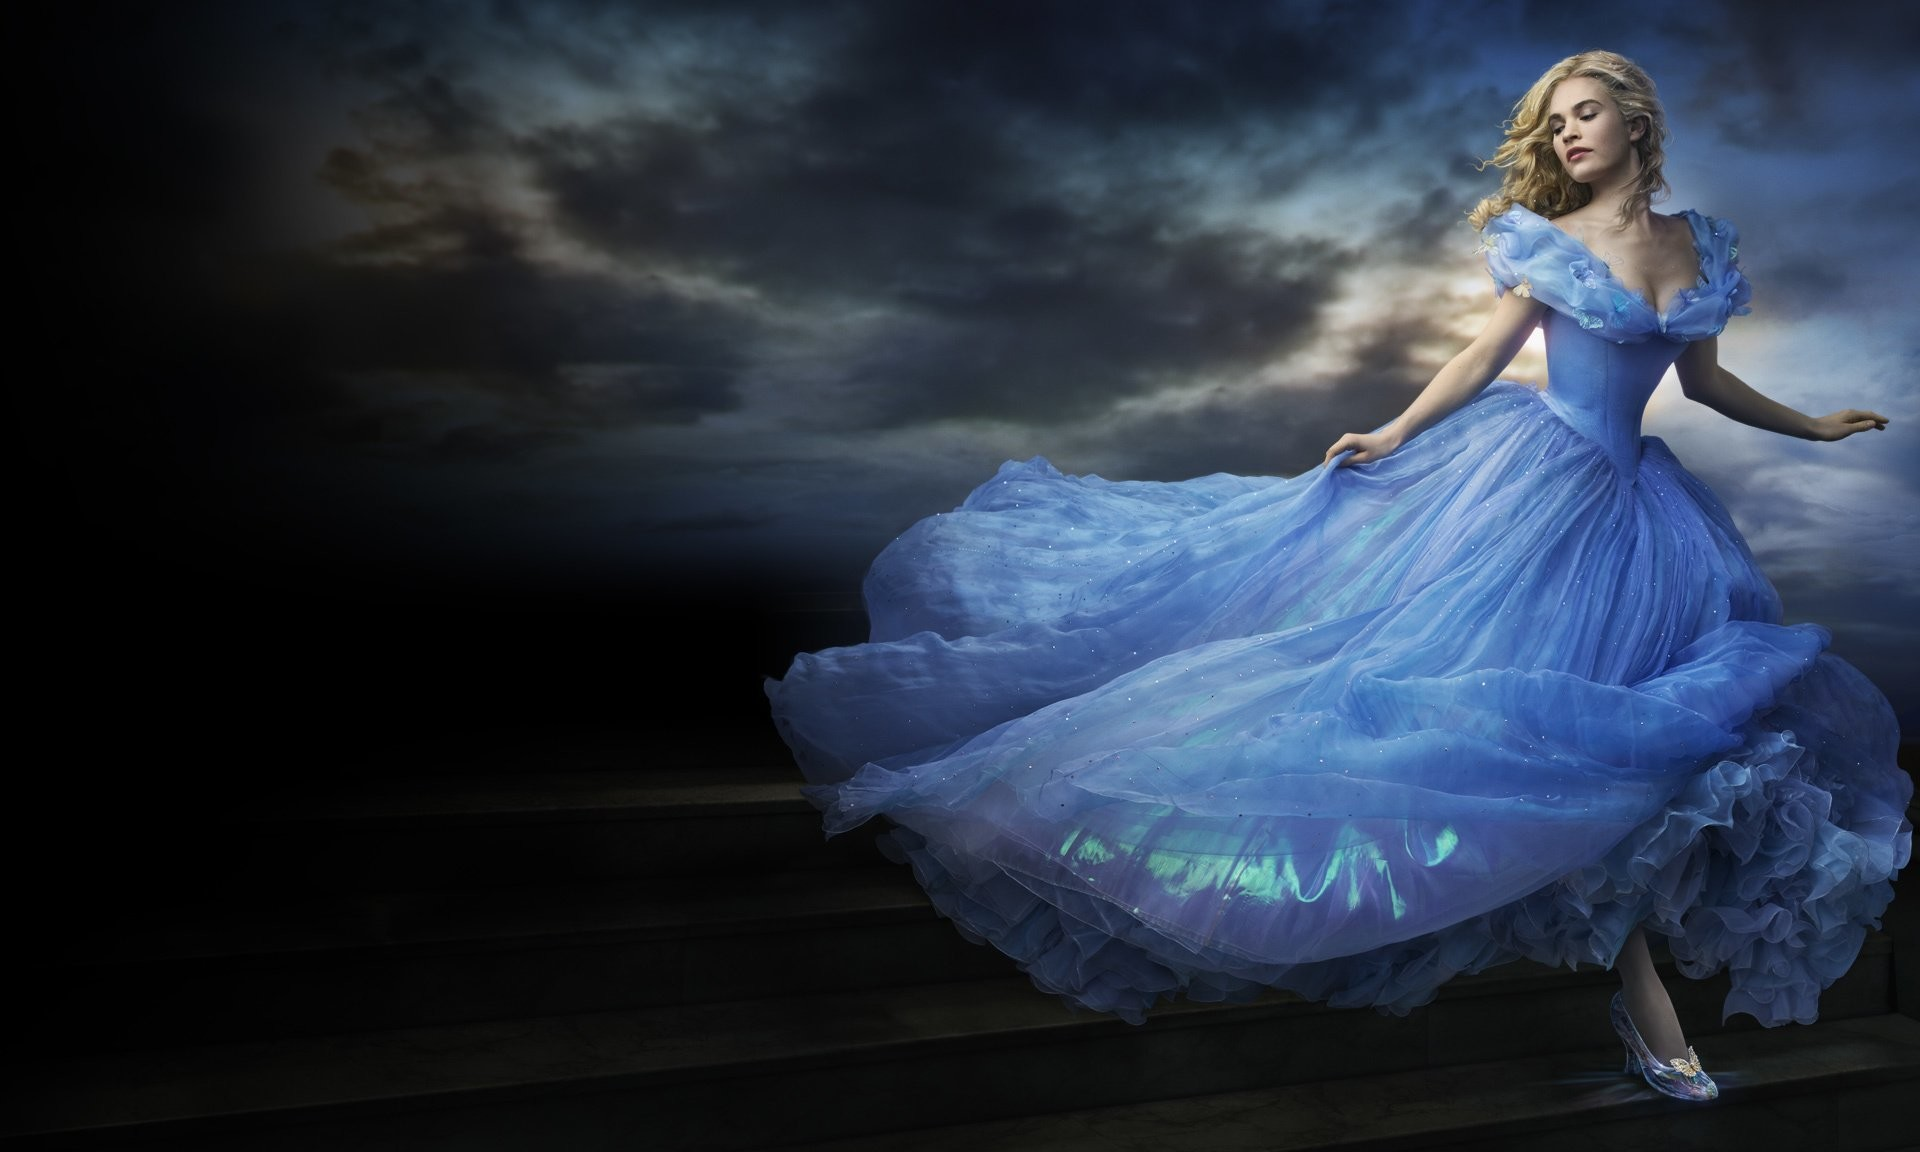 Cinderella wallpaper 74 images 1920x1080 cinderella hd wallpapers pixelstalk cinderella wallpapers best wallpapers 1920x1080 thecheapjerseys Choice Image